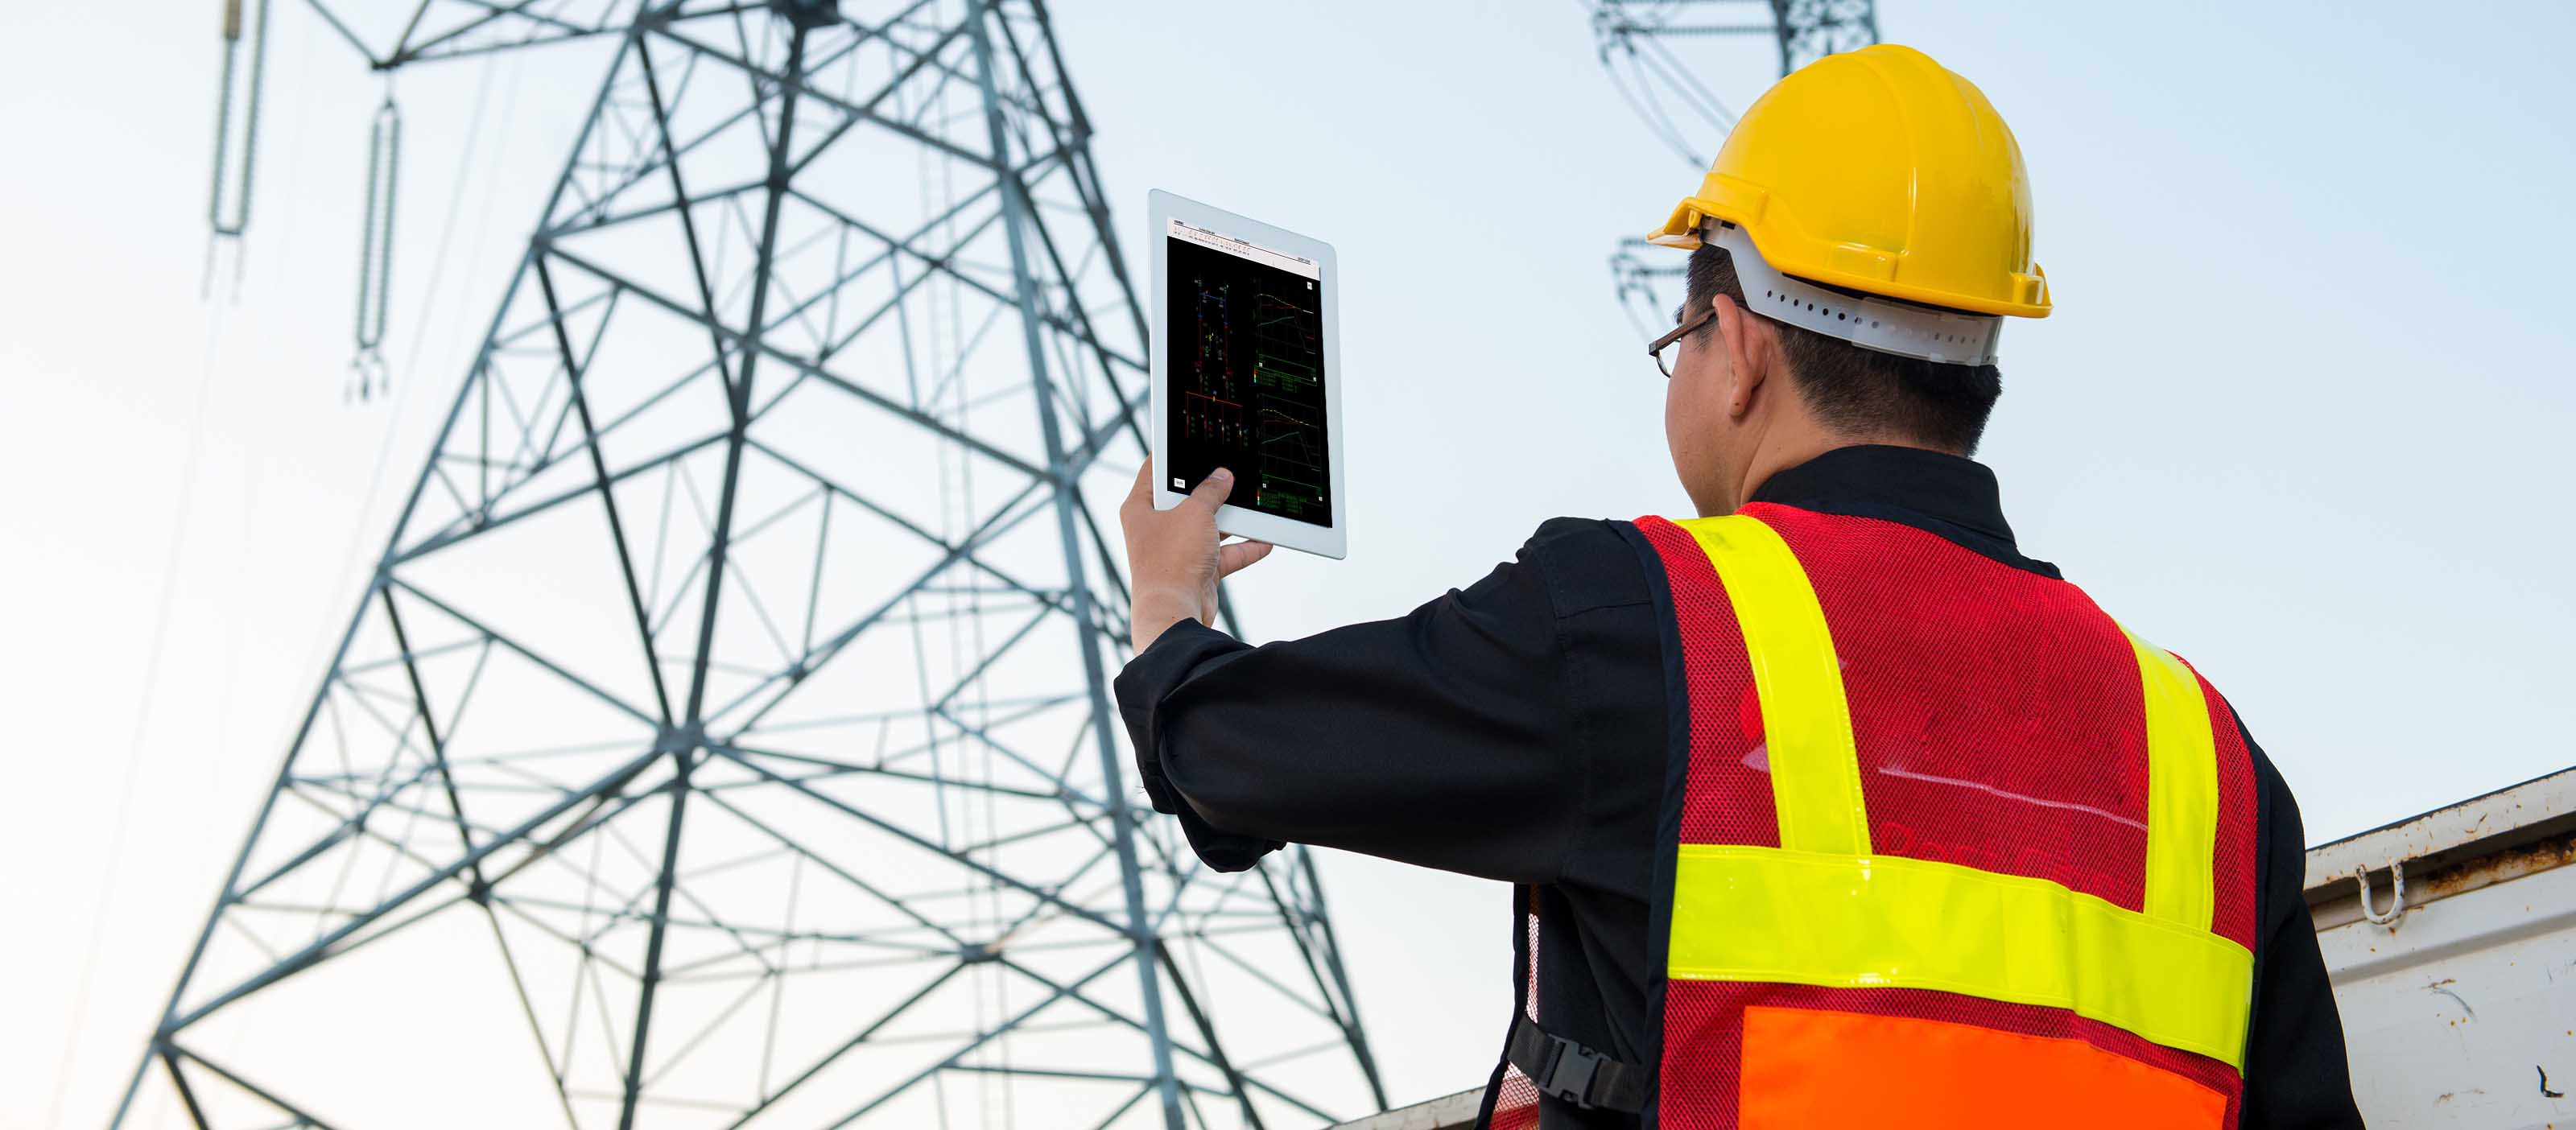 Utility engineer using iPower | GE Digital